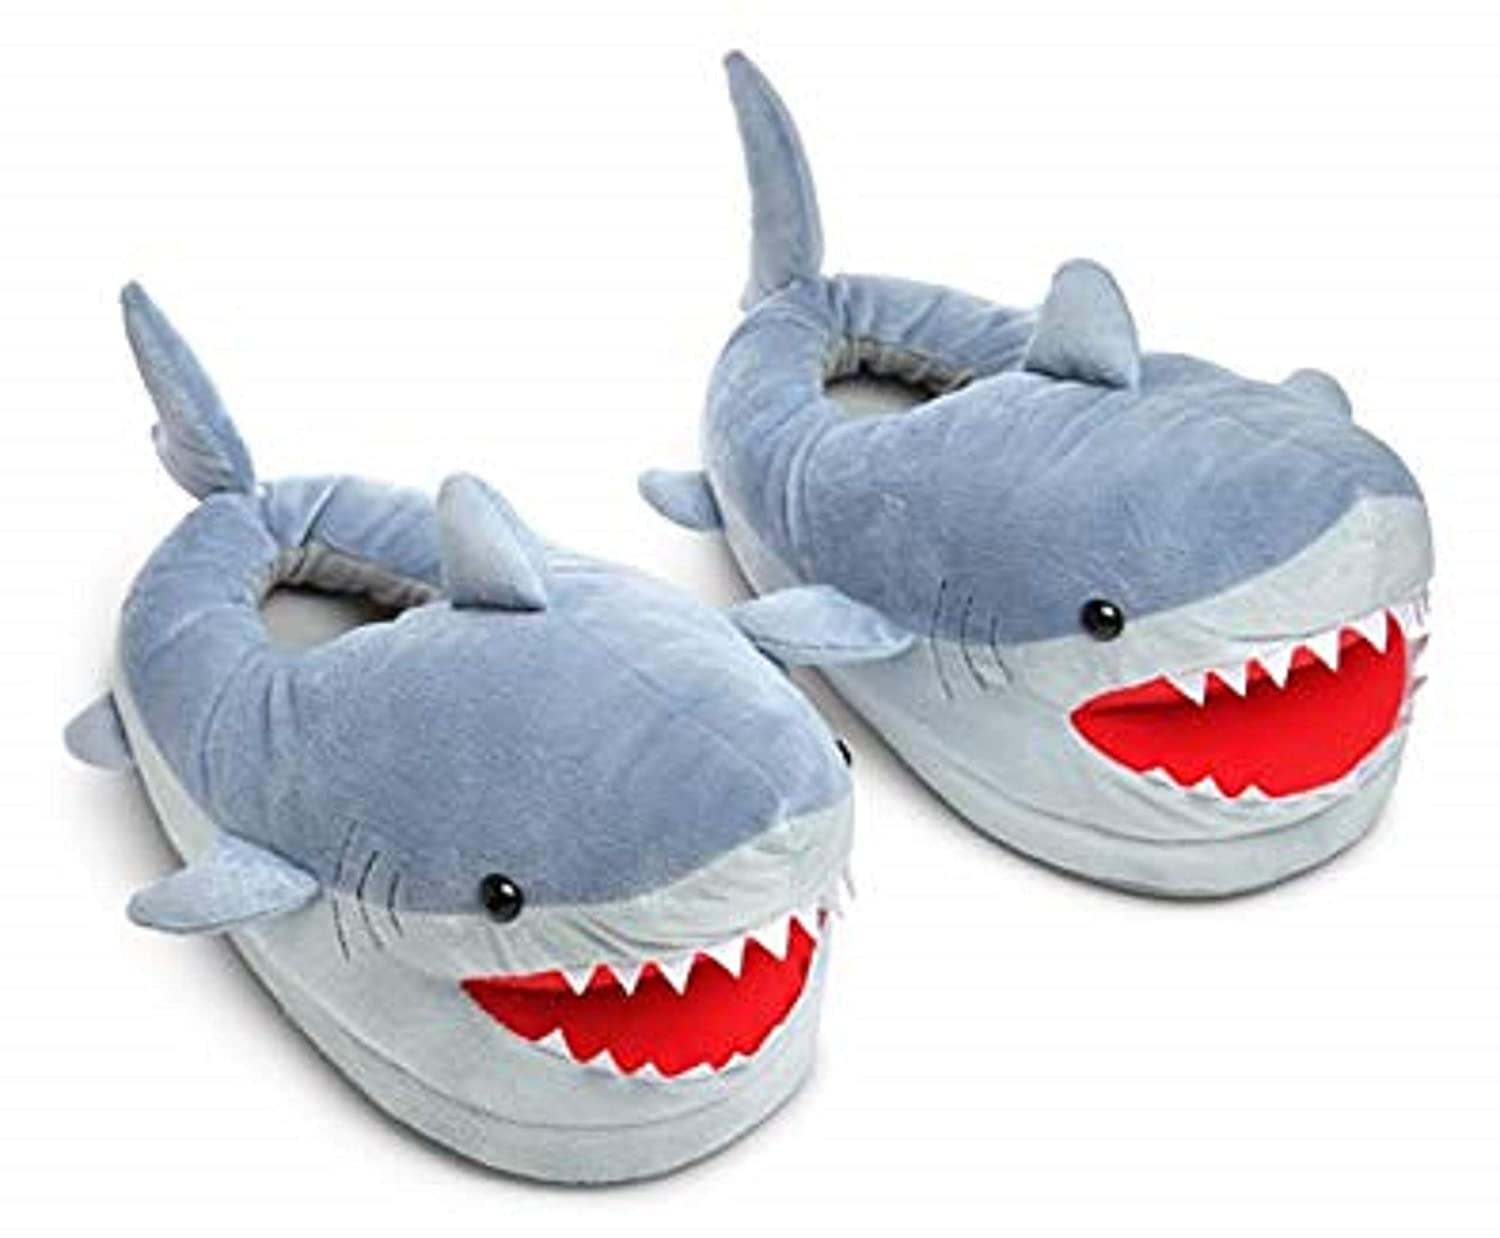 The Best Shark Throw Blanket For Kids